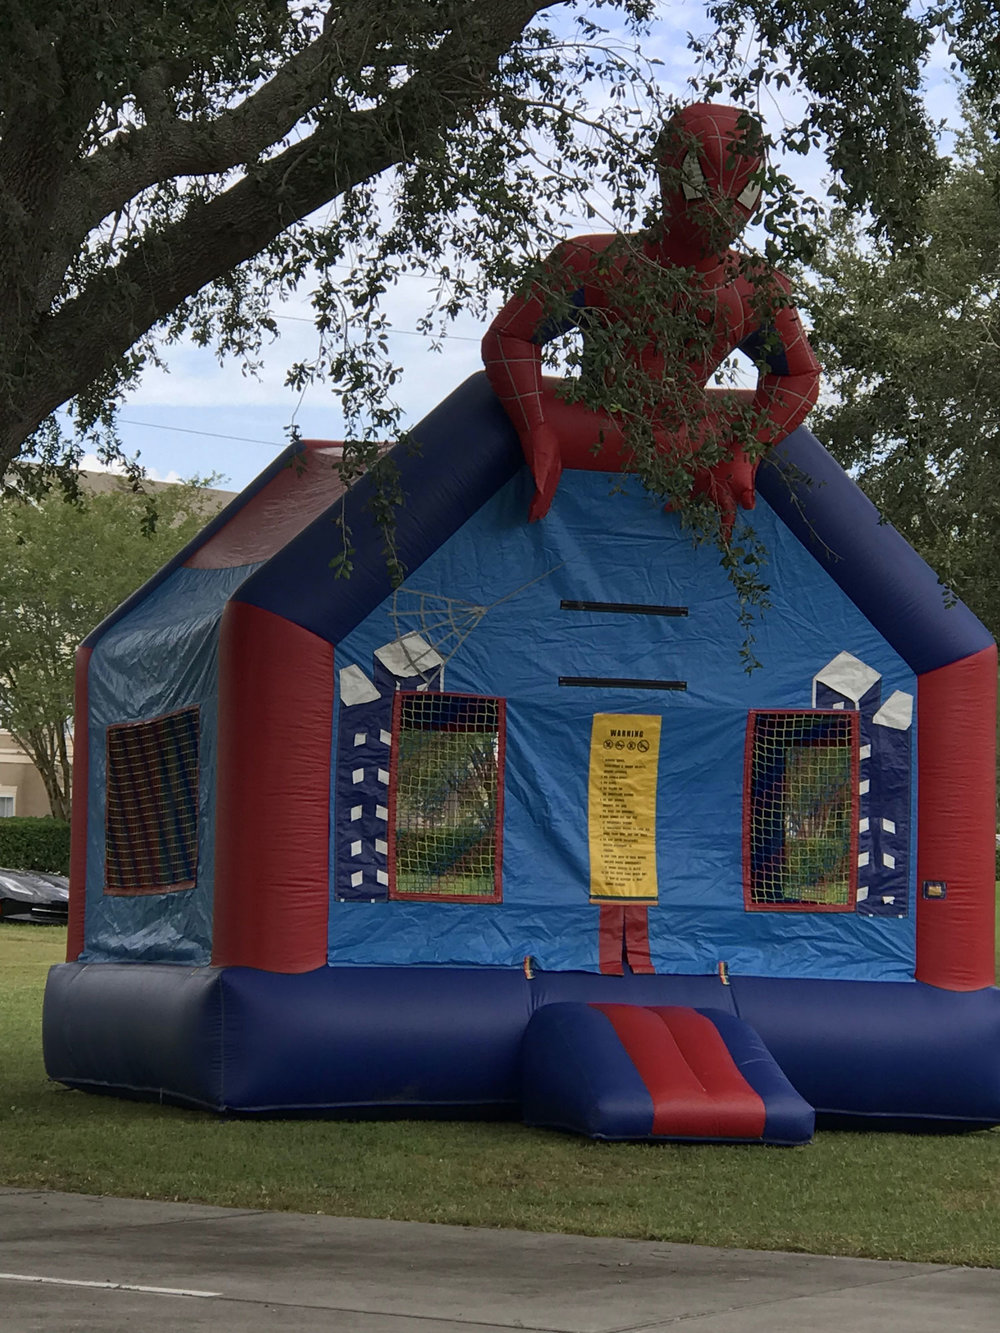 ff-bounce-house.jpg